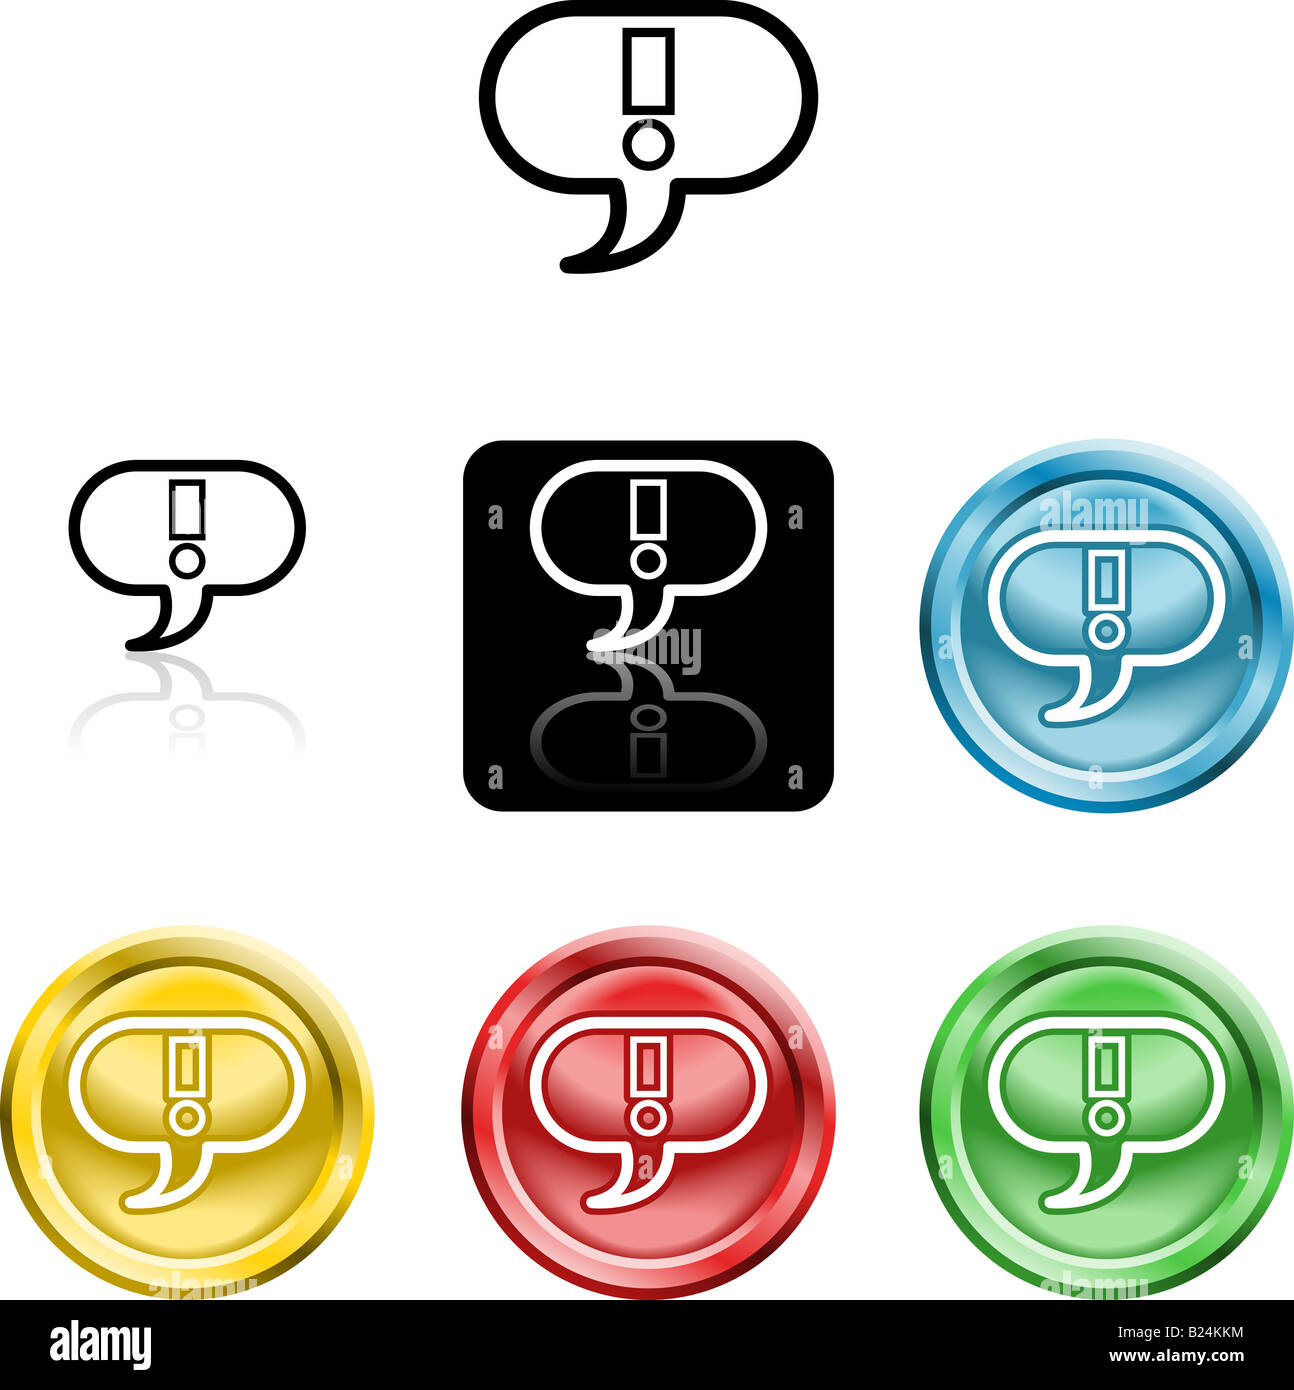 Several versions of an icon symbol of a stylised exclamtion mark in a speach bubble - Stock Image